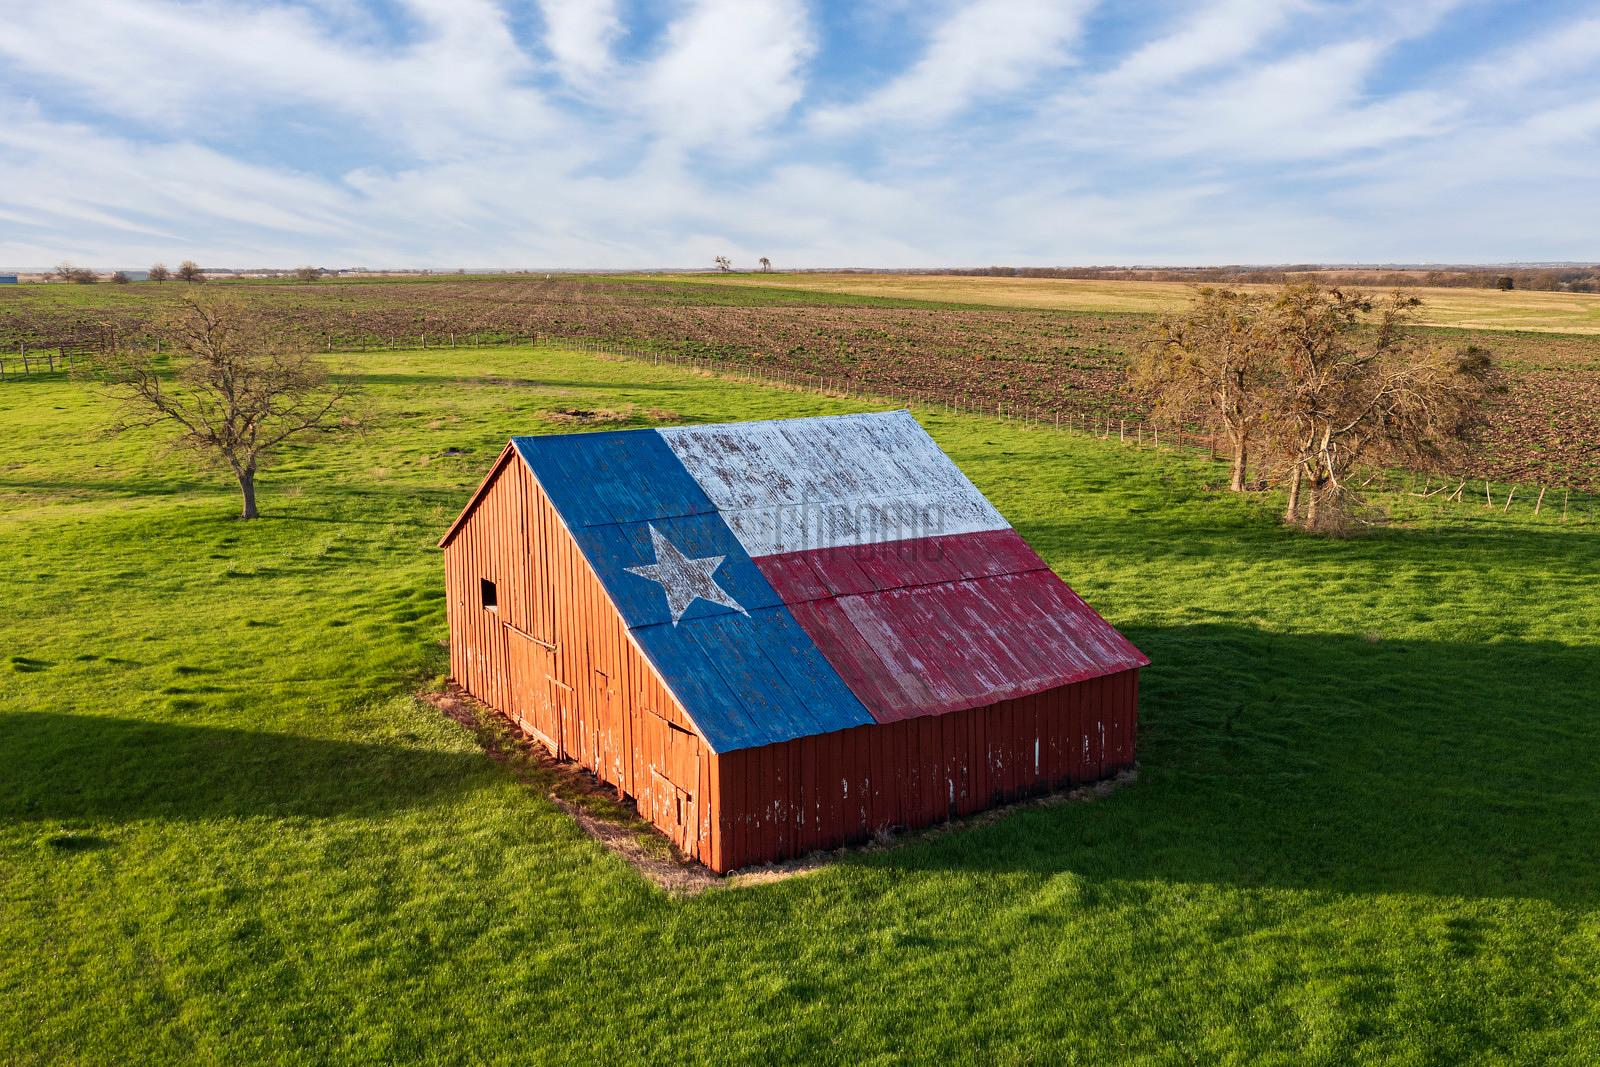 Barn With Texas Flag Painted on the Roof